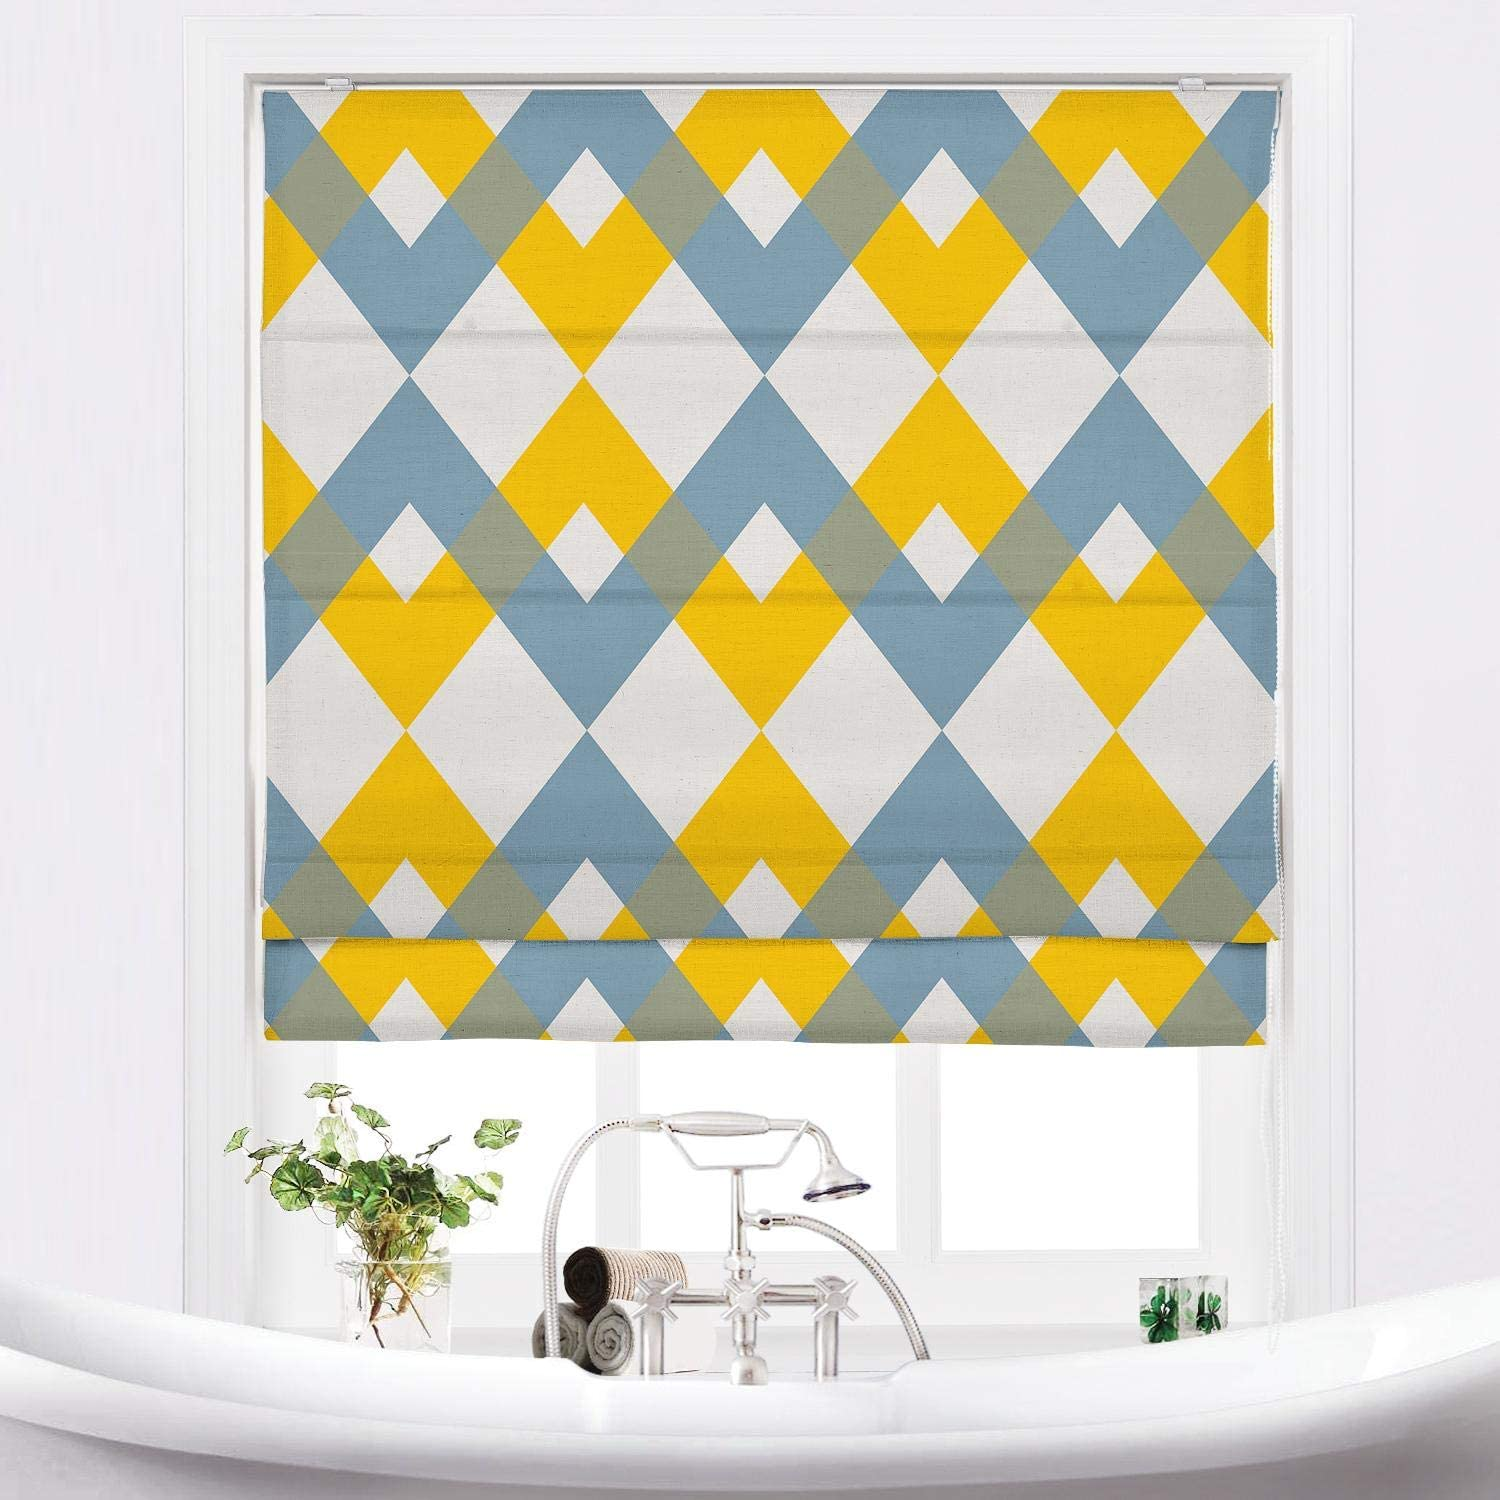 TWOPAGES Customized Roman Shade Linen Print Lo with 18%OFF 贈答